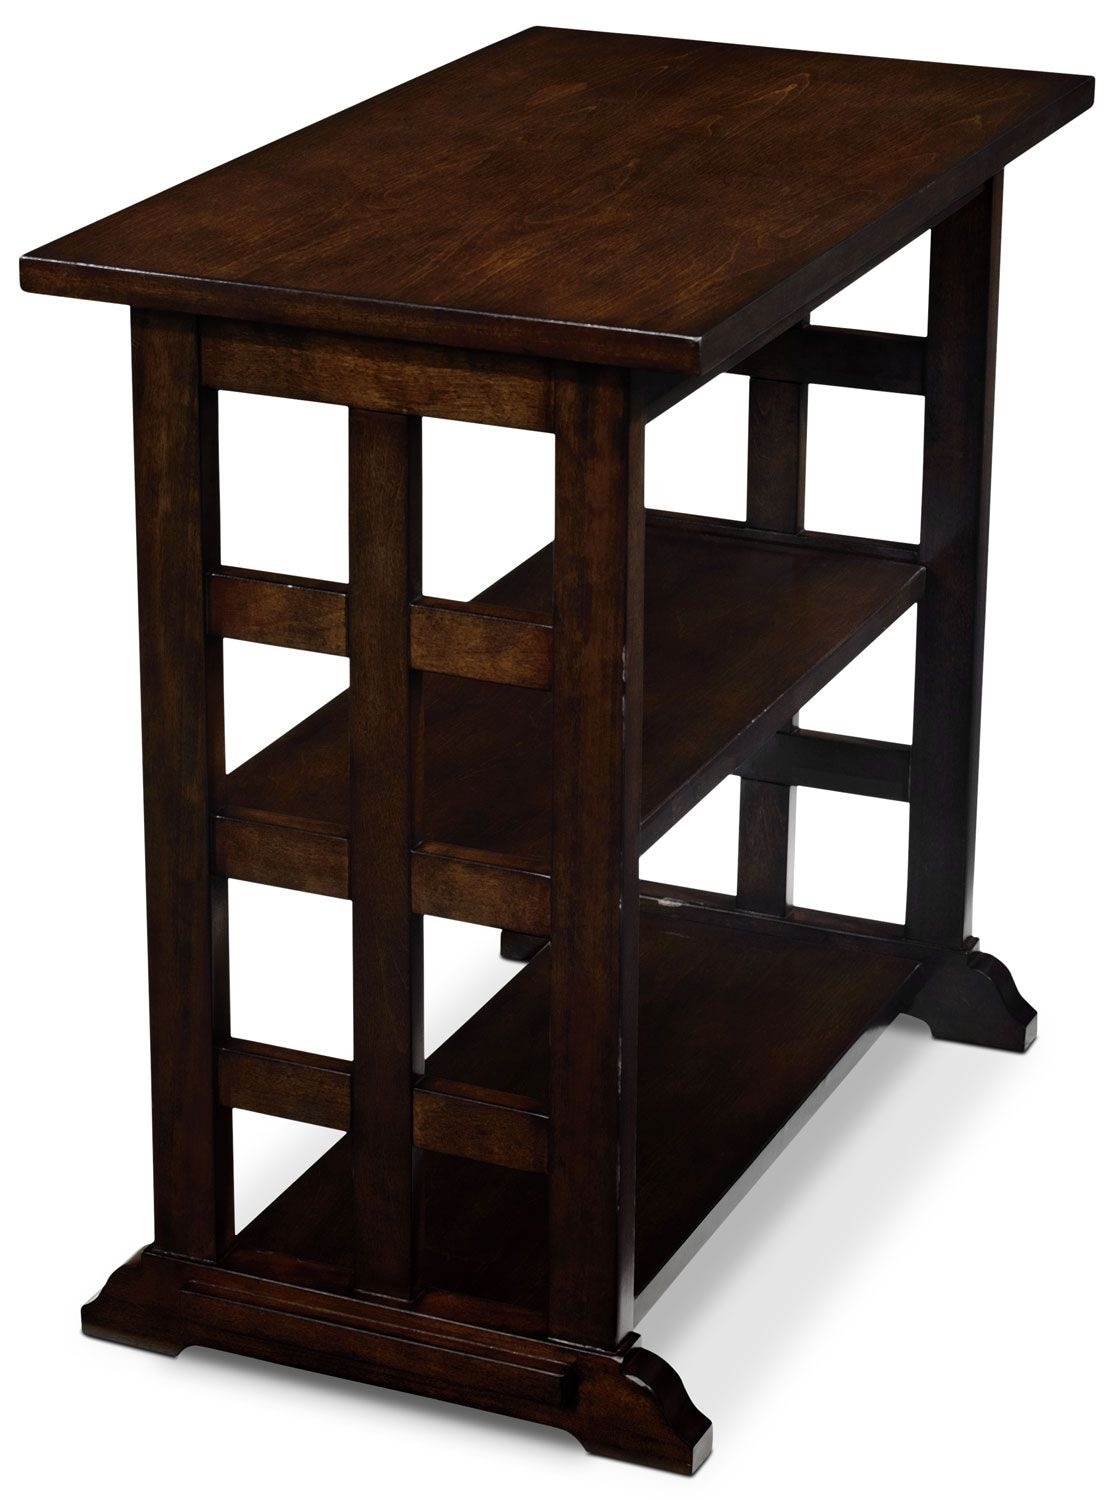 Gander Accent Table - Dark Brown